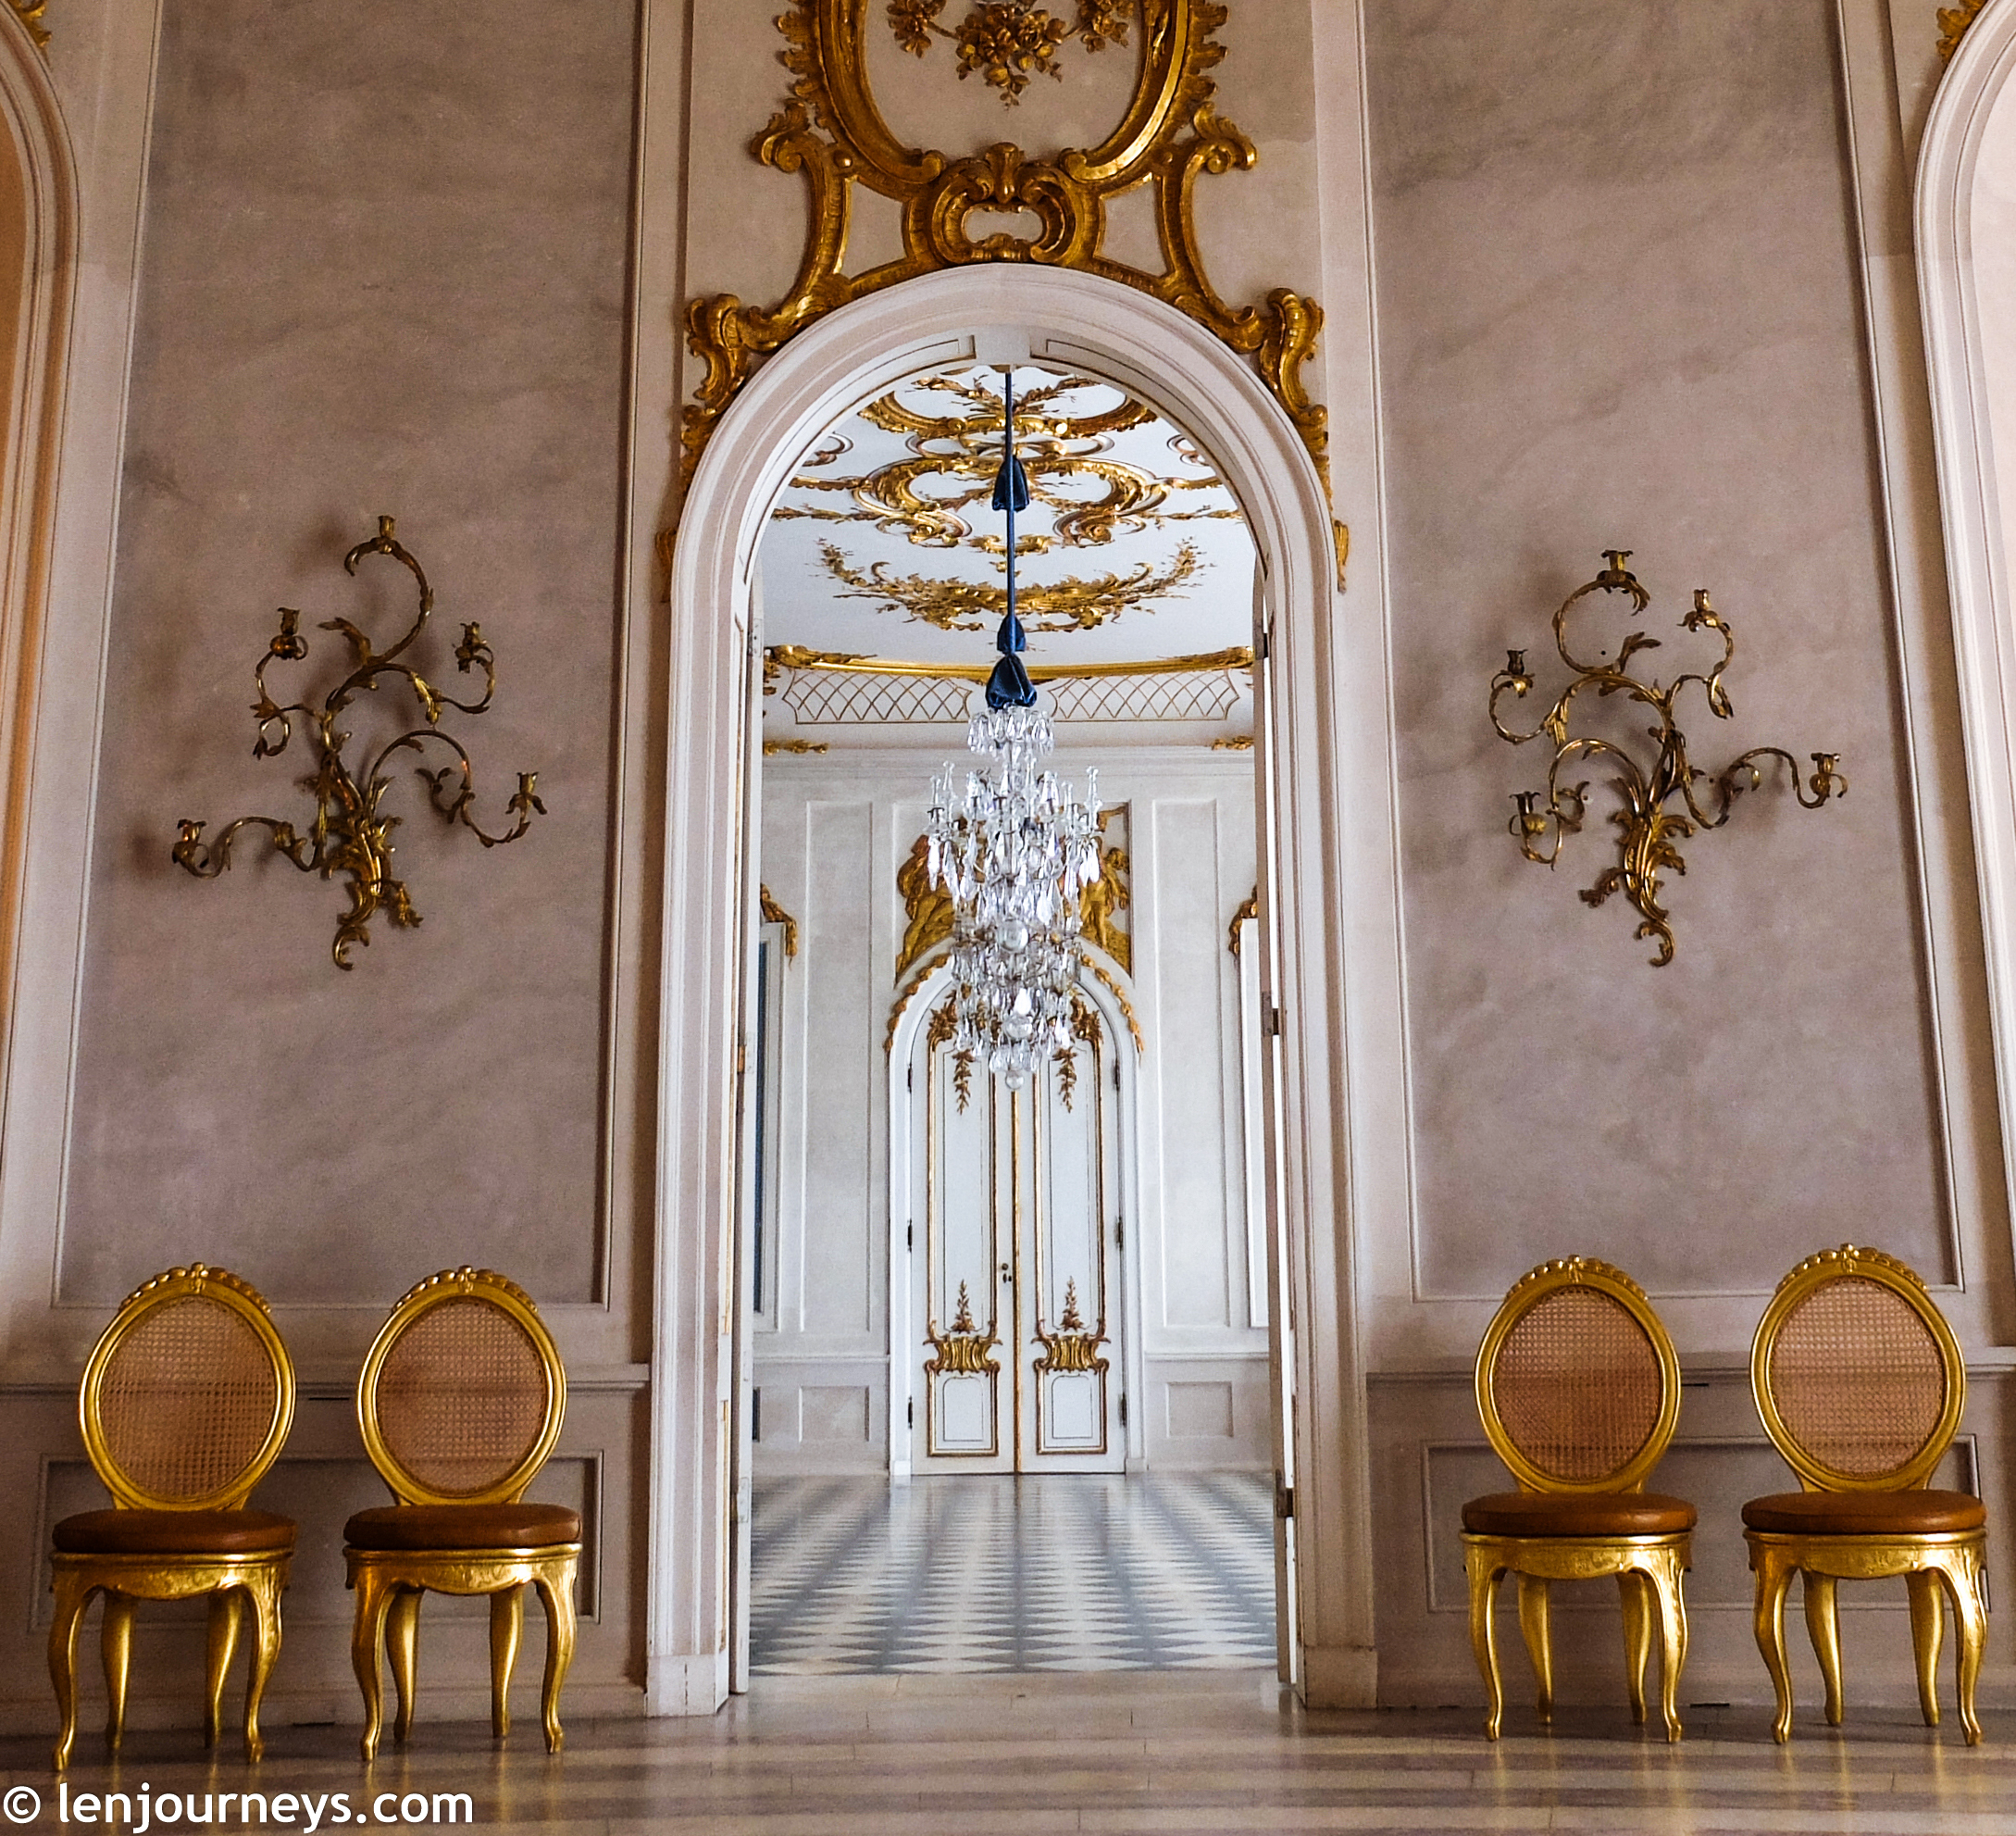 Rooms in Rococo style